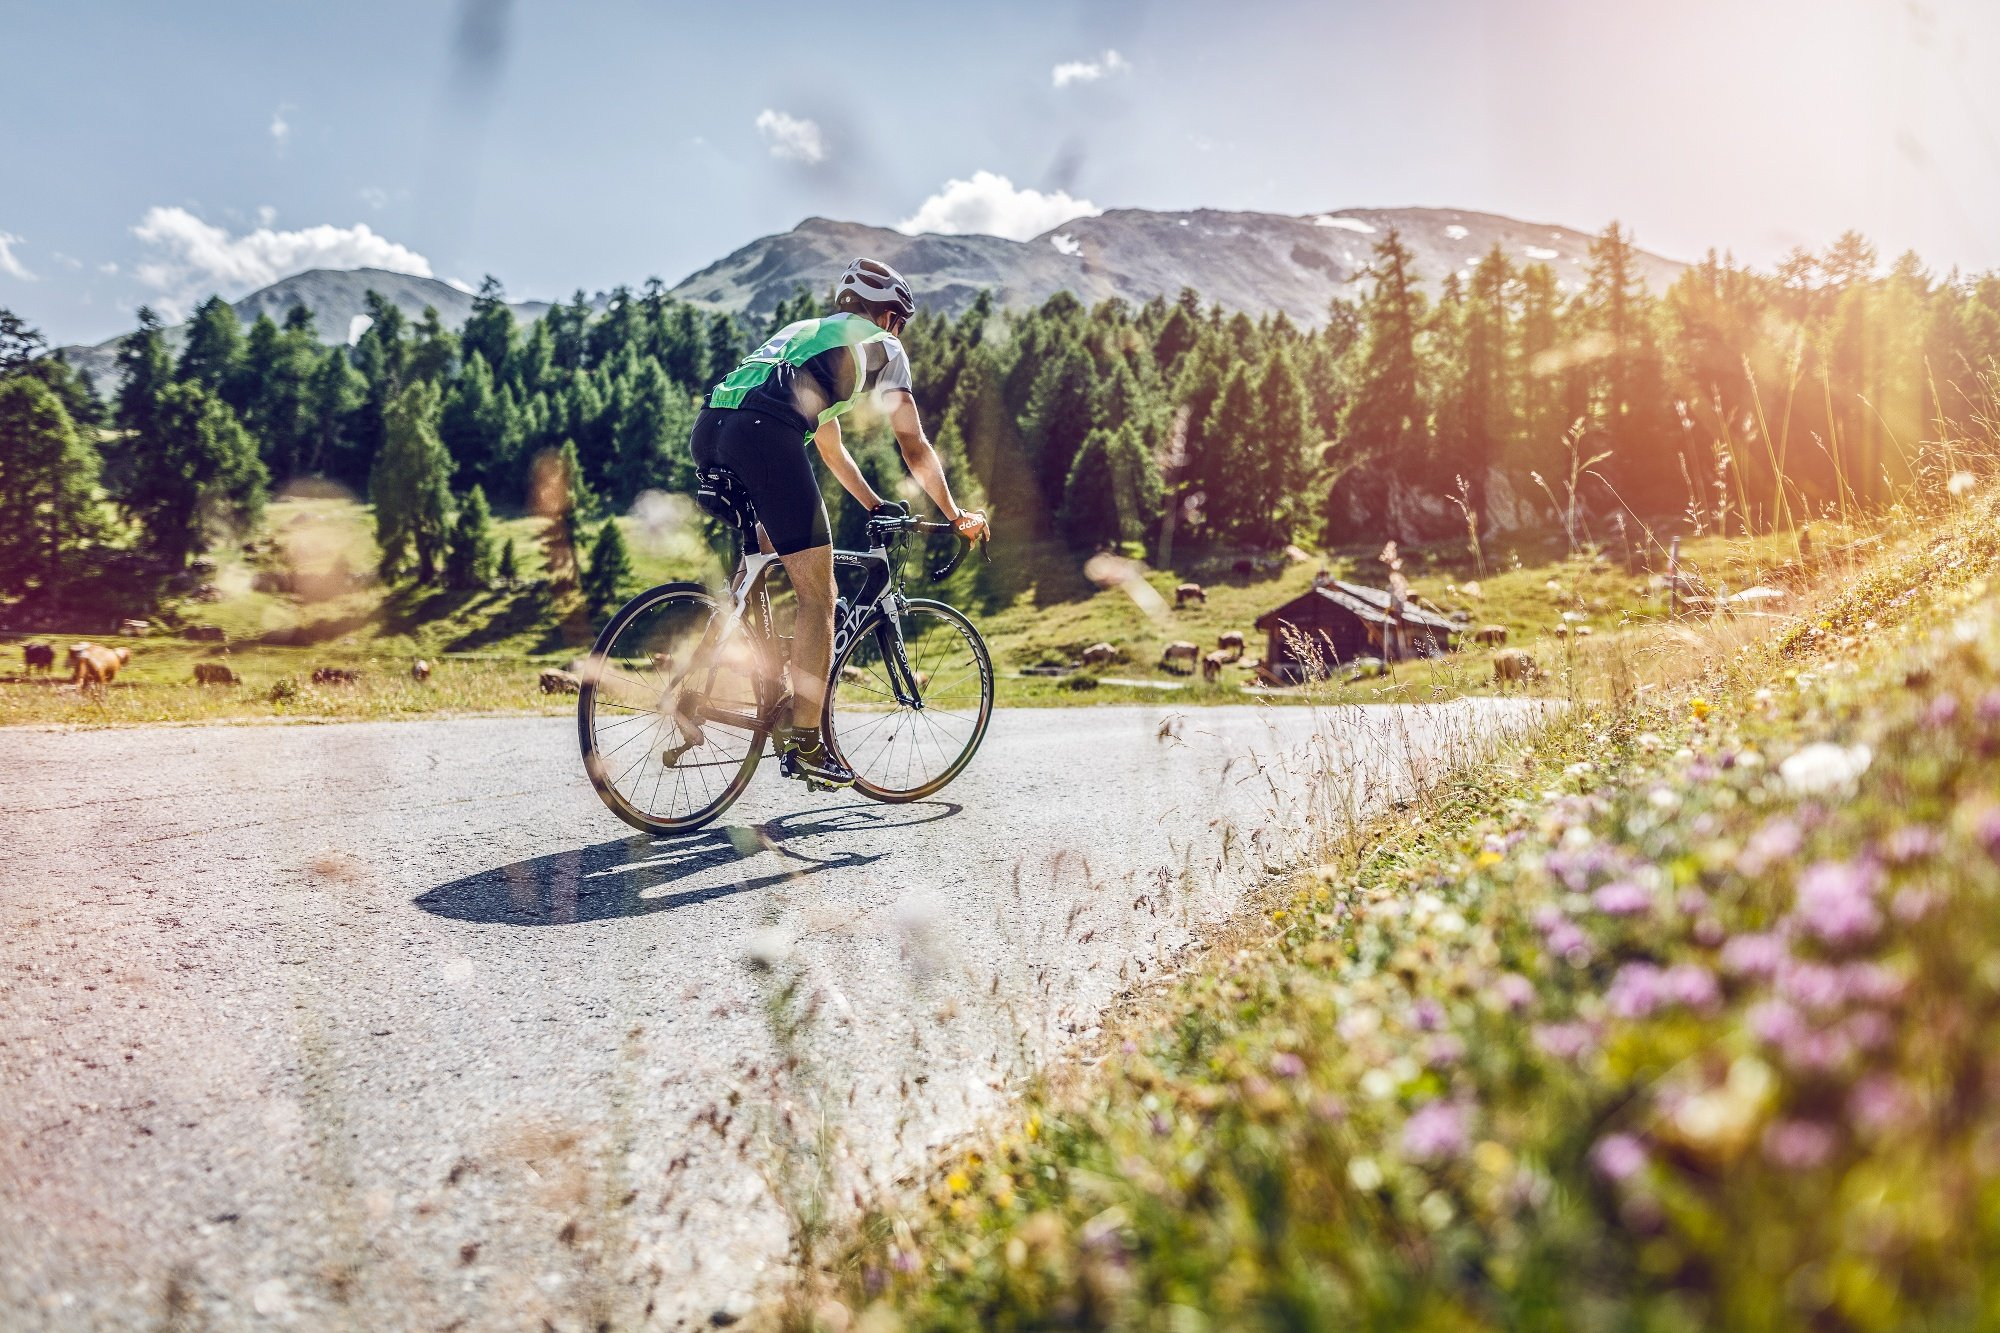 Moosalp…a pass that is certainly worth the trip! From Stalden, the countless hairpins and magnificent views from this sun-drenched southern slope will amaze any cyclist who ventures up this 1,400 metre climb.